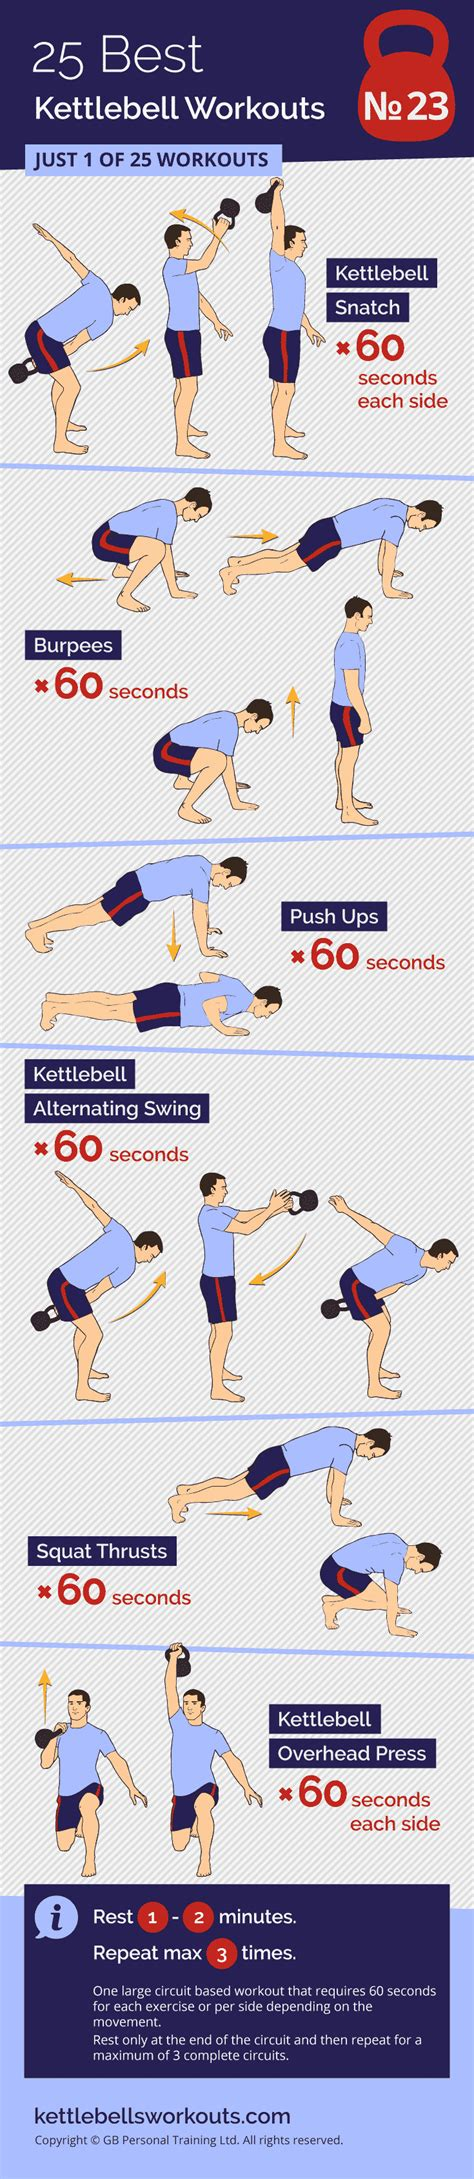 kettlebell circuit workout exercises